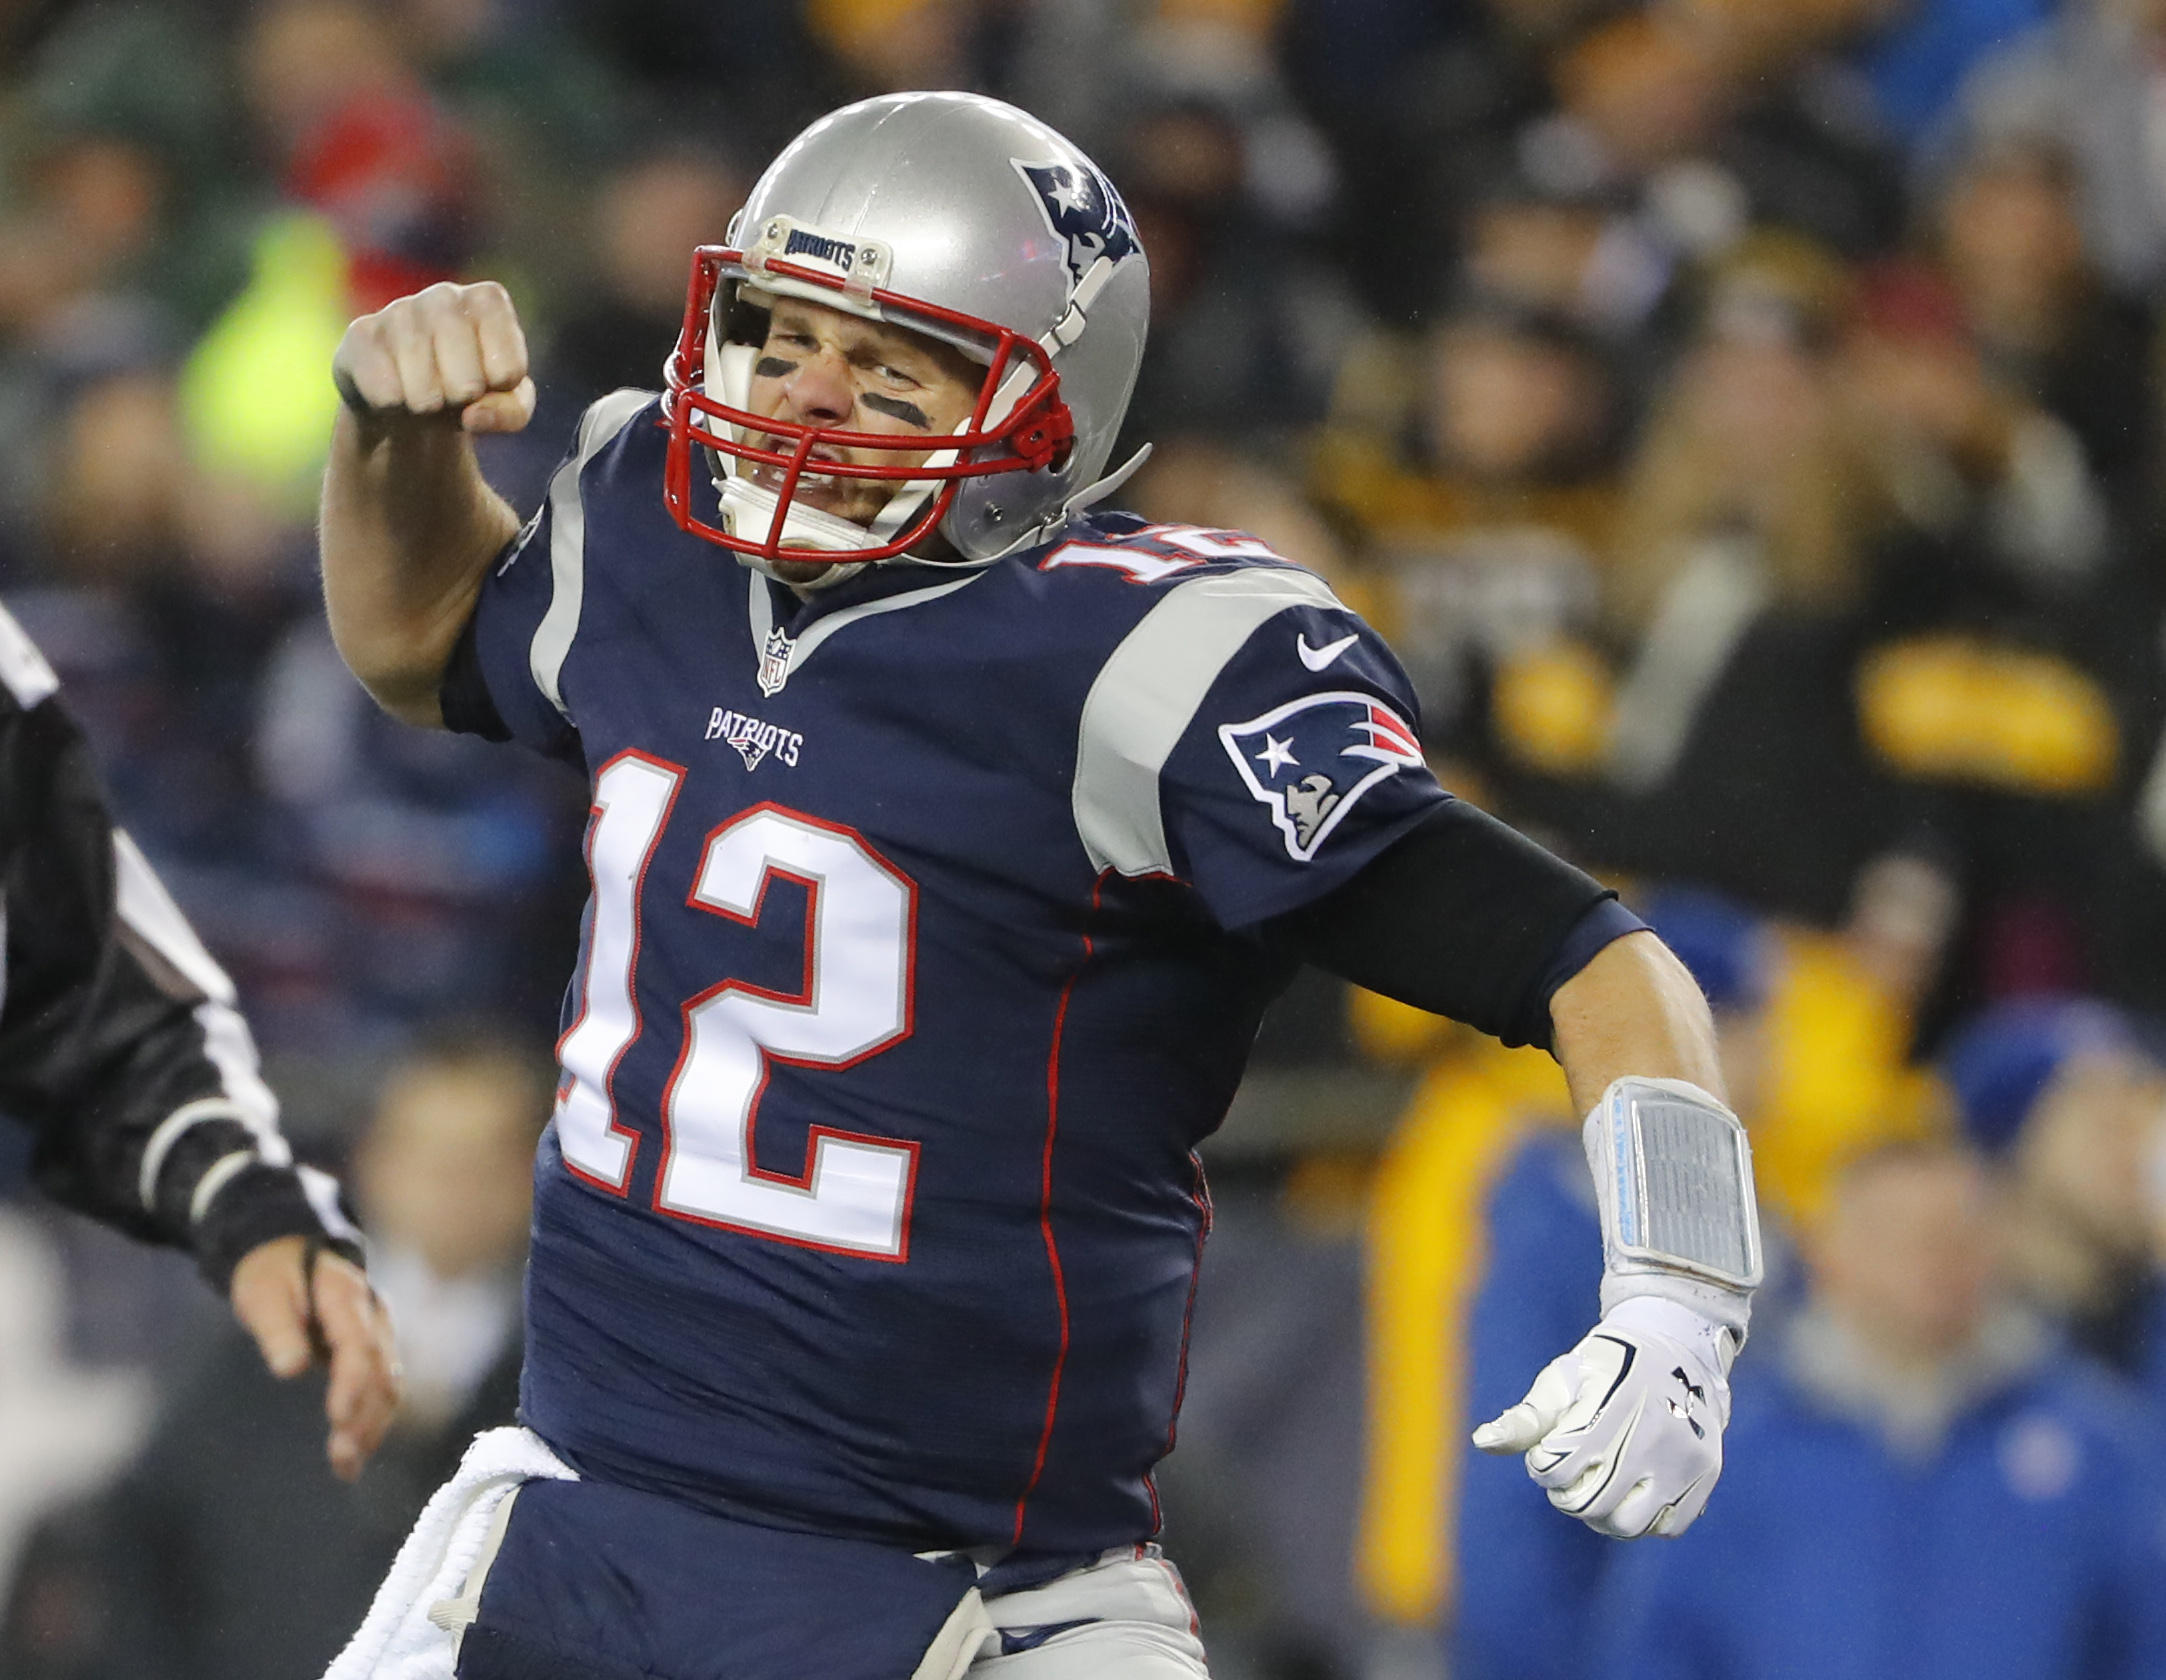 newest 06d89 ebb7a Tom Brady leads the Patriots back to Super Bowl with 36-17 ...